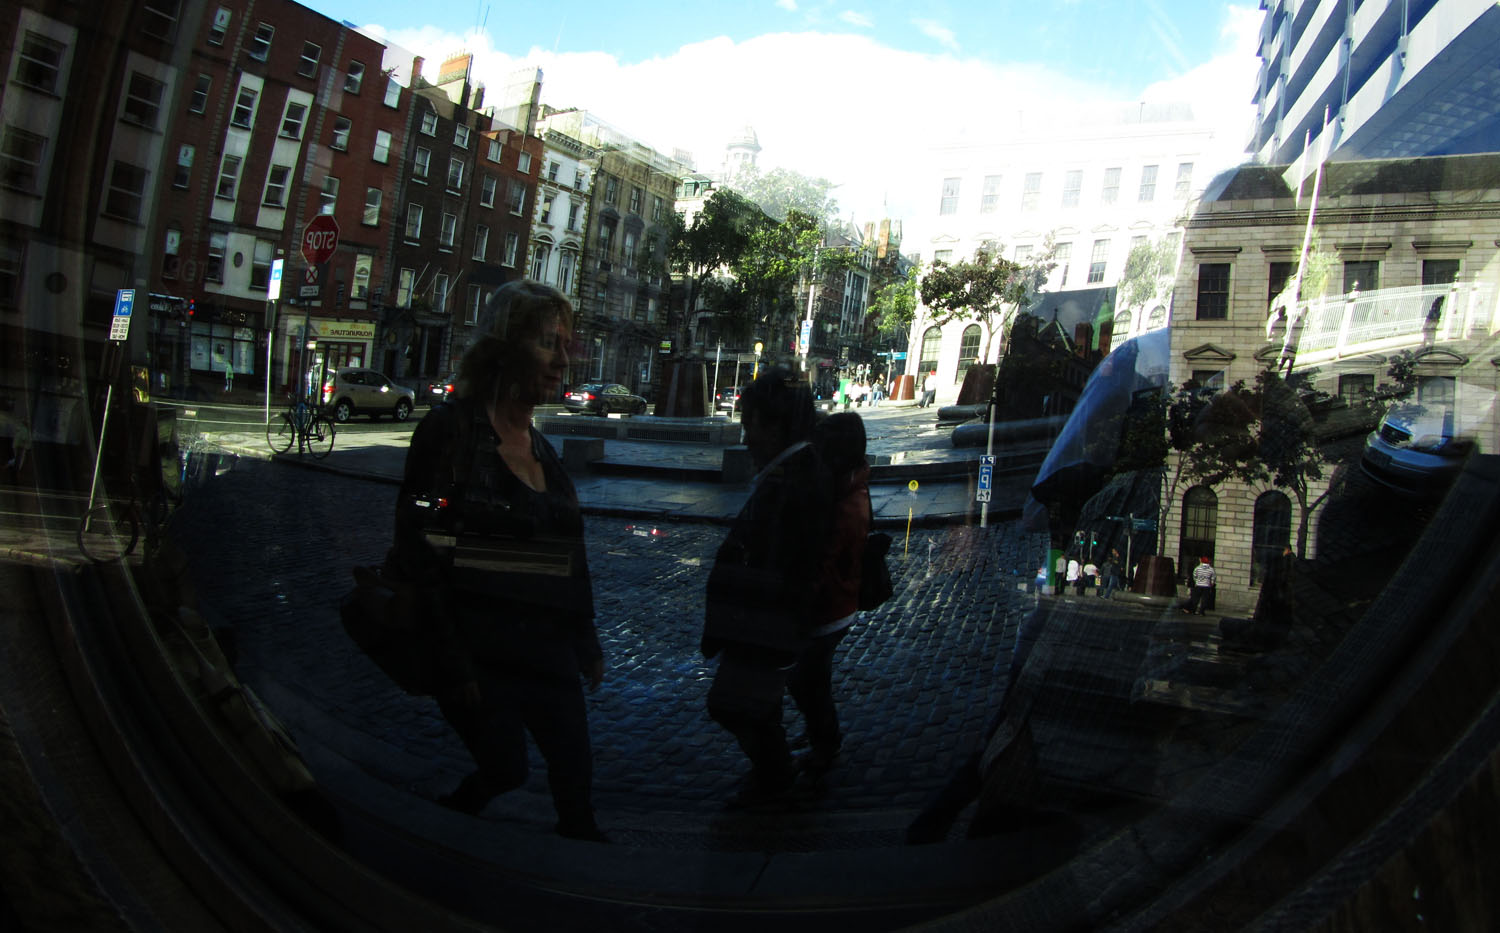 Ireland-Dublin-Street-Scenes-Reflection